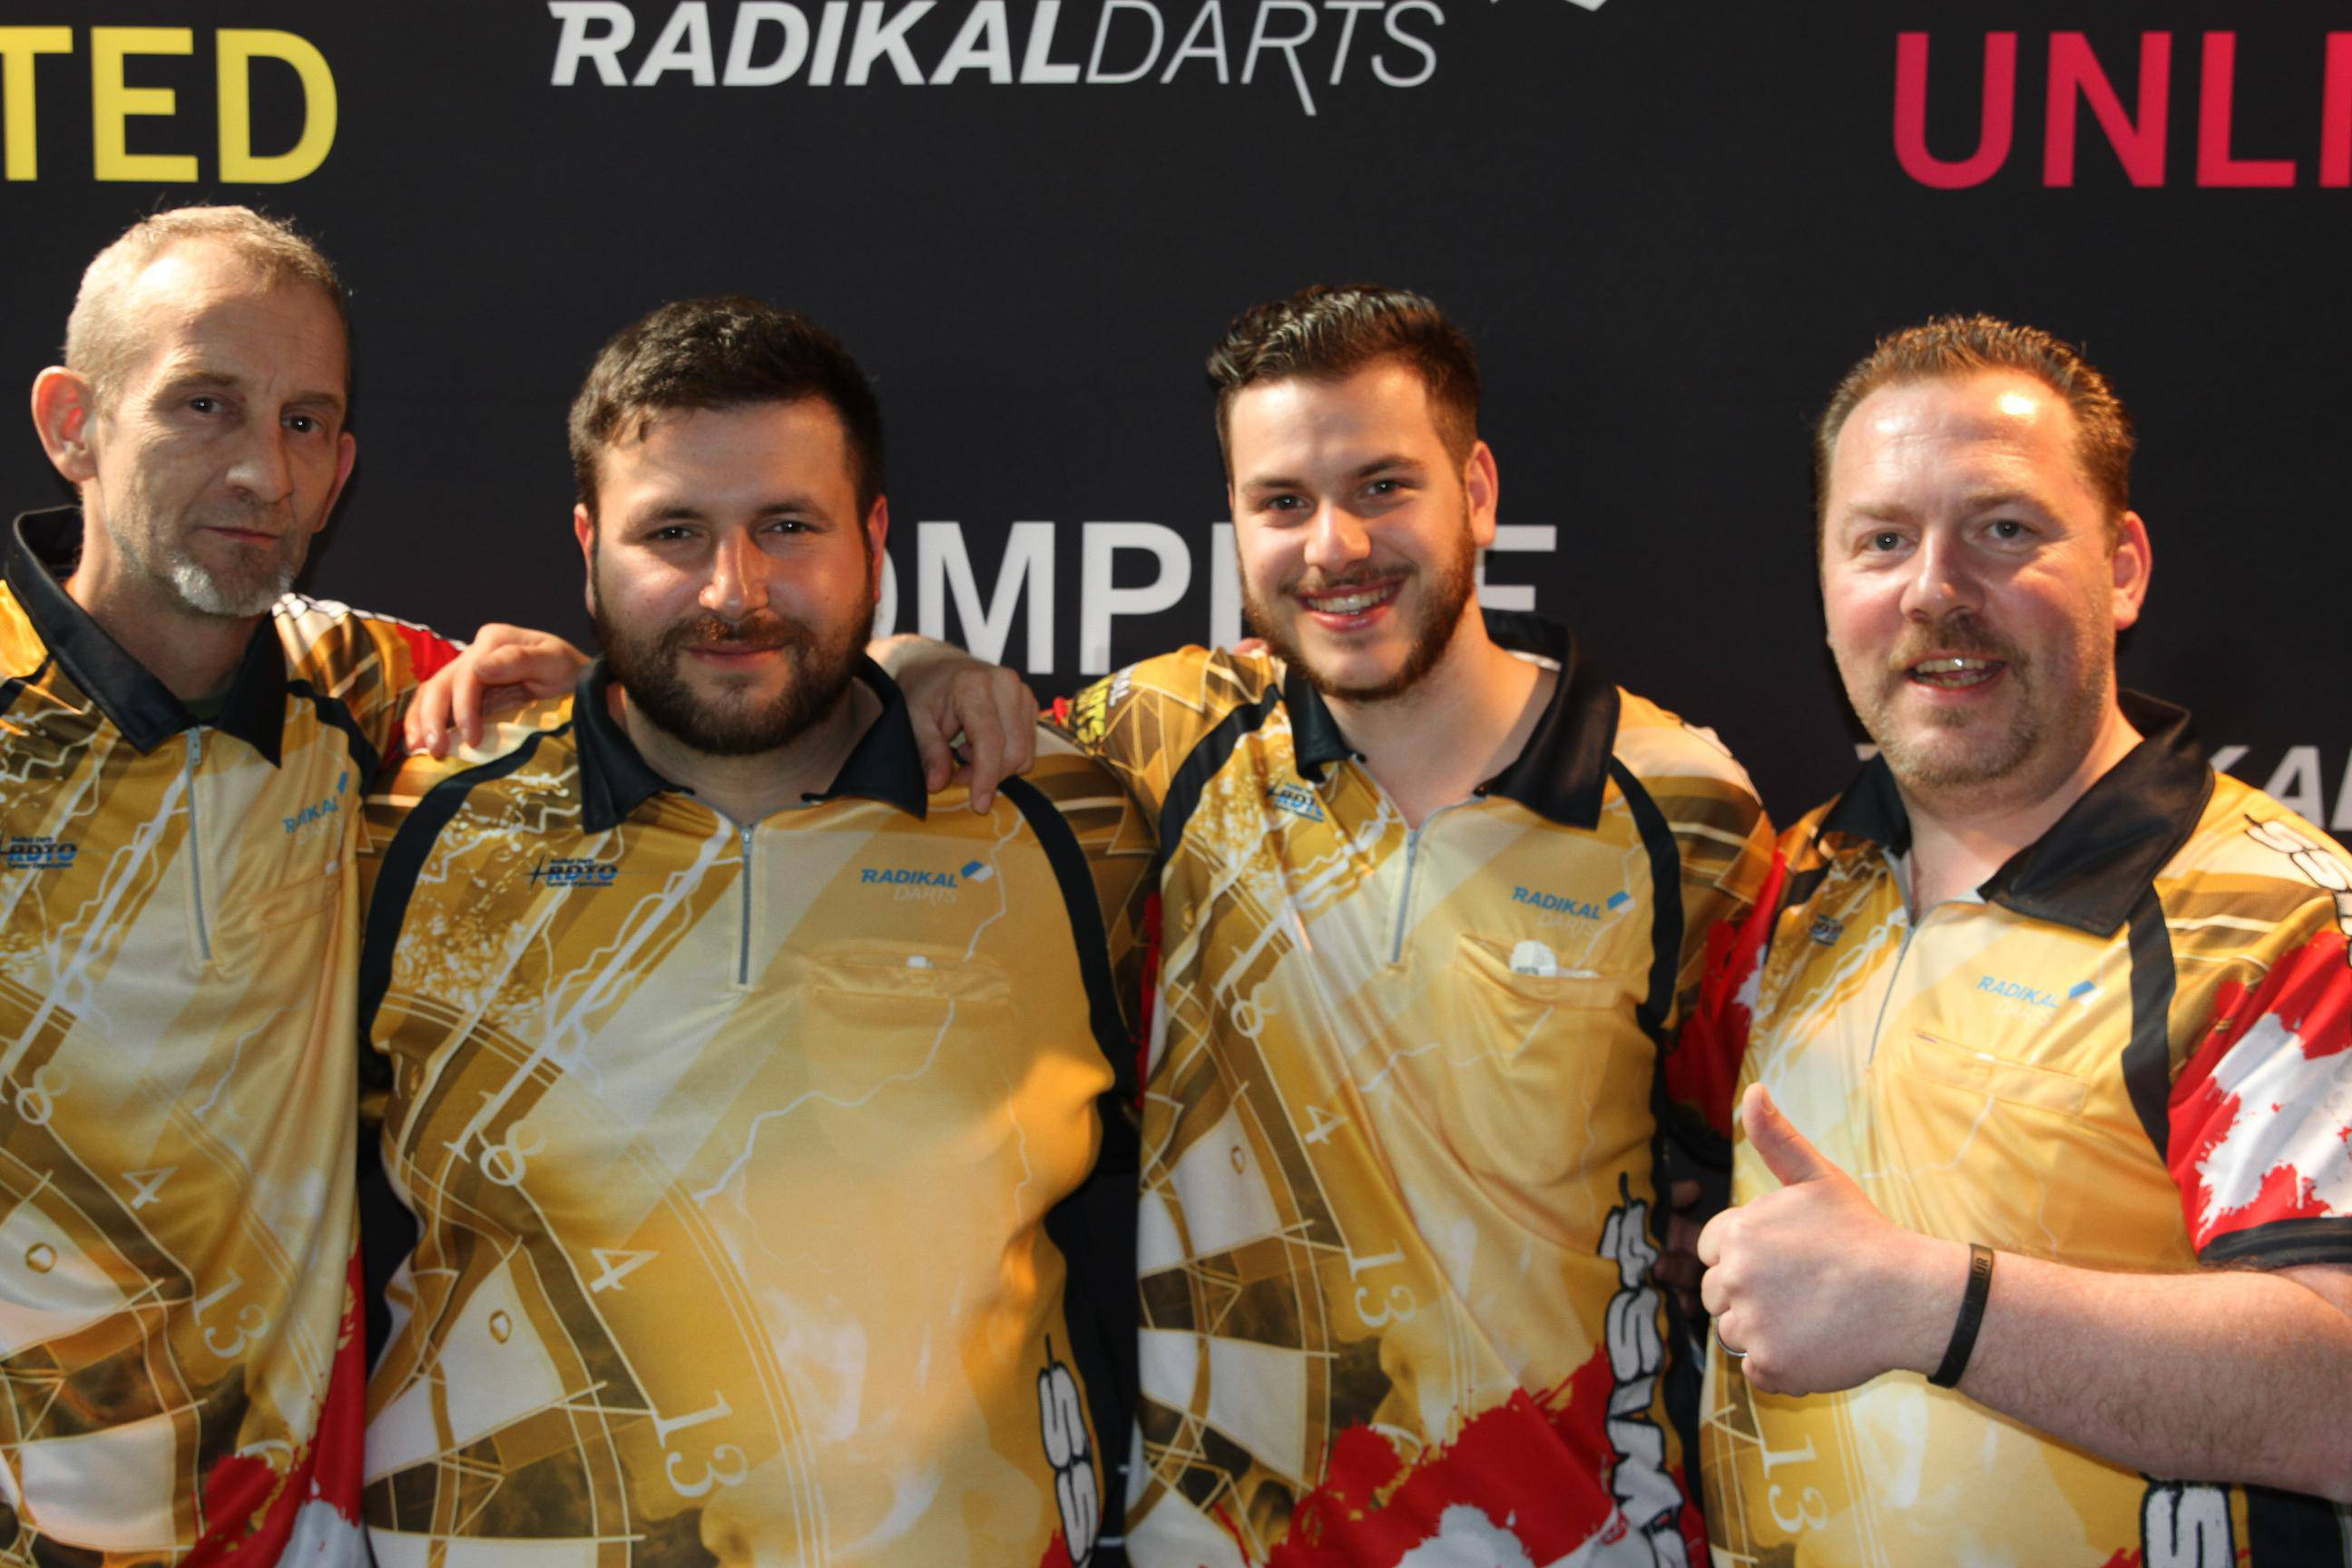 Internacional Radikal Darts 2018 Photocall